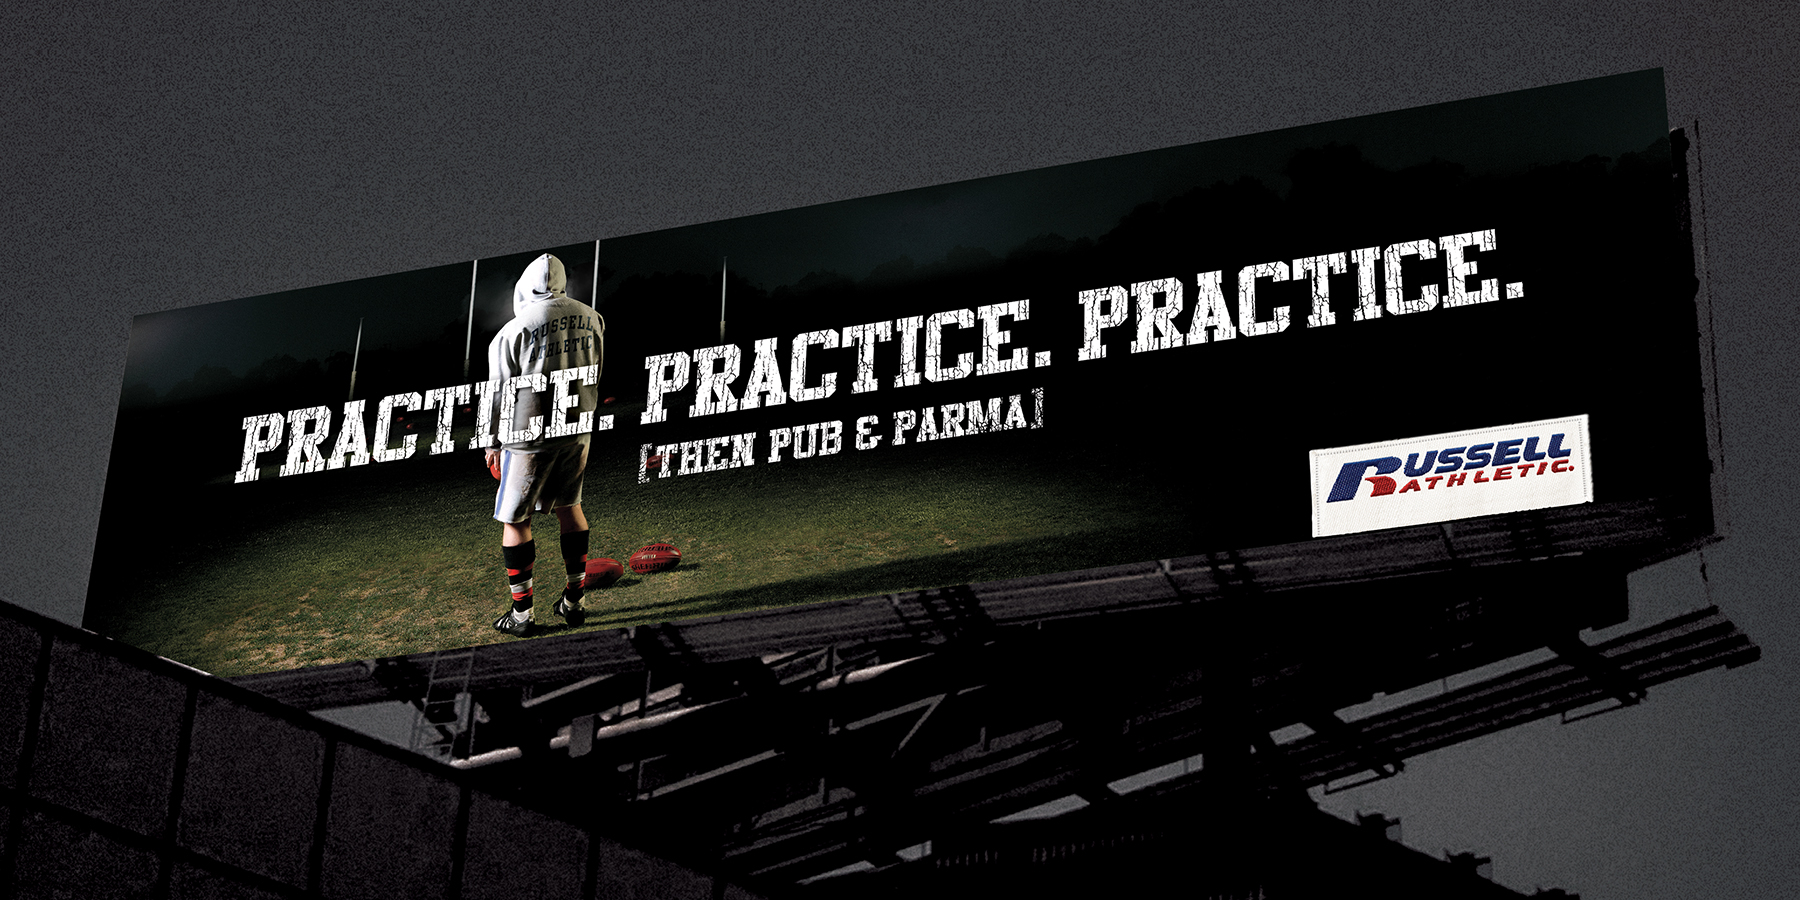 Russell Athletic - Advertising Campaign Billboard